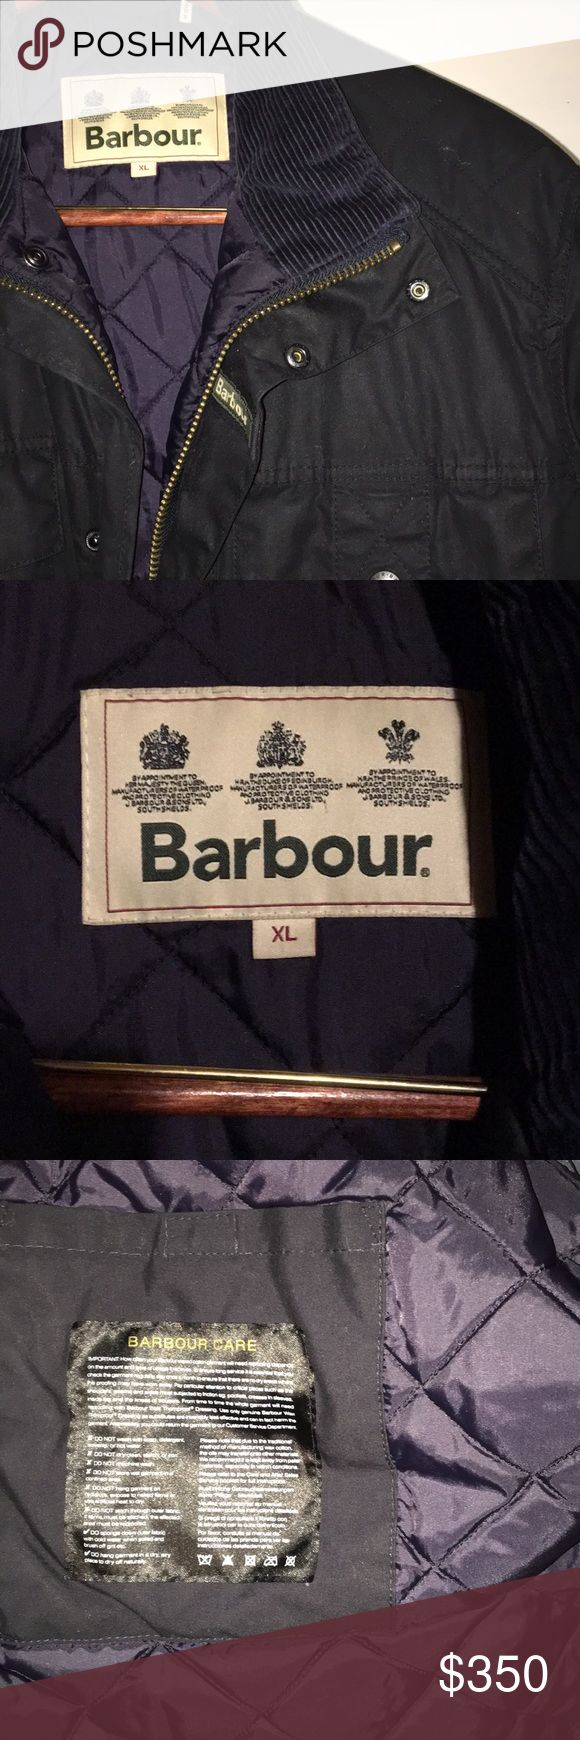 💎 Barbour Jacket Men's 💎 VERY NICE men's Barbour jacket!  Very warm and thick. Super comfortable! This was bought BRAND NEW and worn once! Didn't fit right for me so I'm selling! The color is a really dark deep navy with a navy Corduroy collar. The inside is a navy quilted insulation.   Size: XL  Condition: XL Barbour Jackets & Coats Raincoats